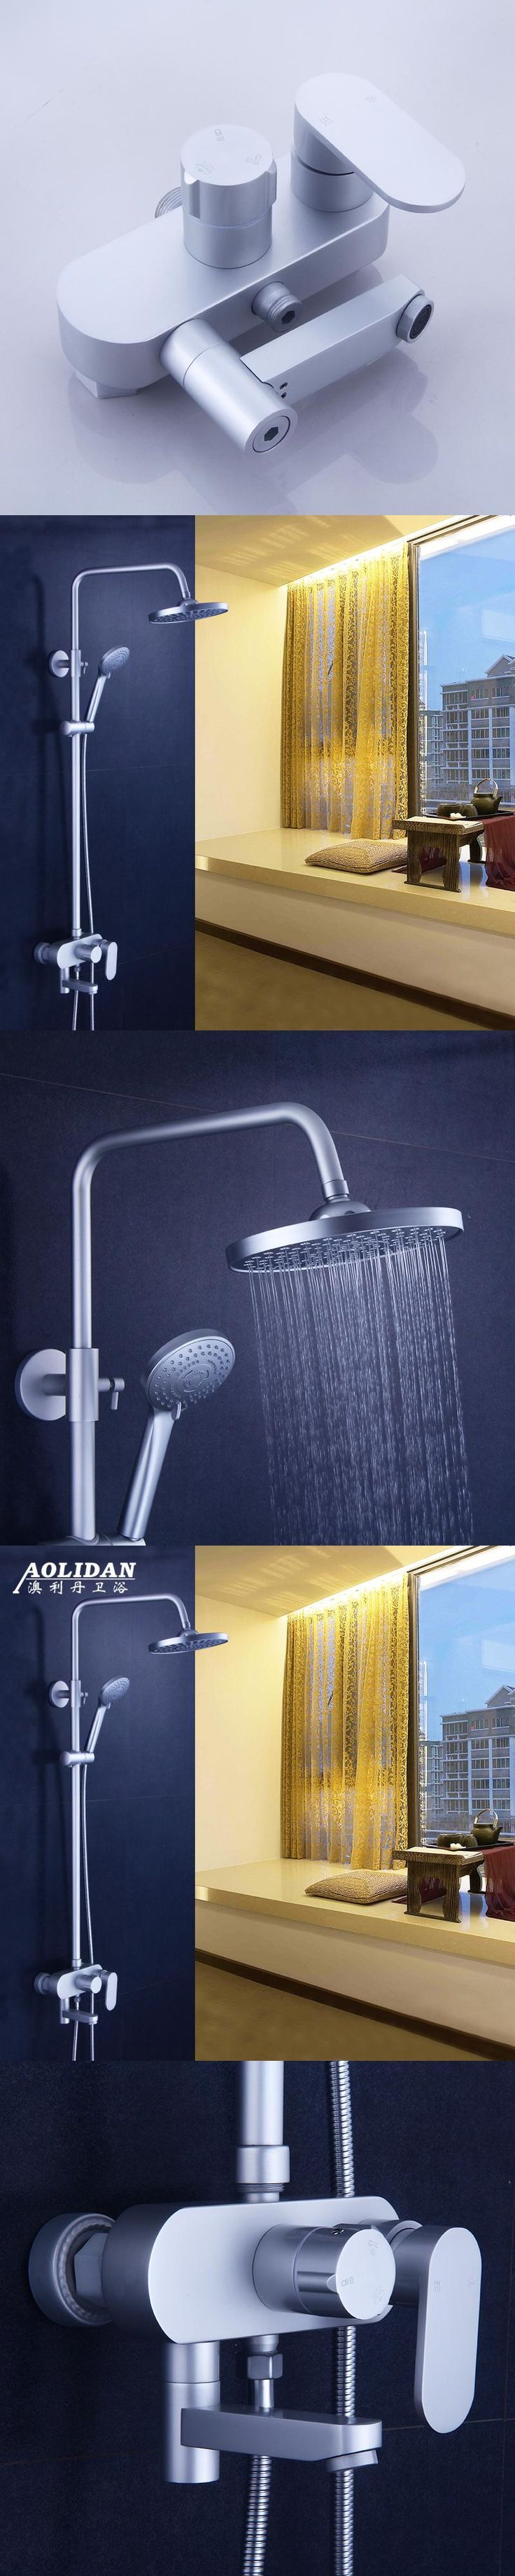 Alrec Dan space aluminum shower bathroom shower bathroom shower cold and hot water valve with the nozzle set